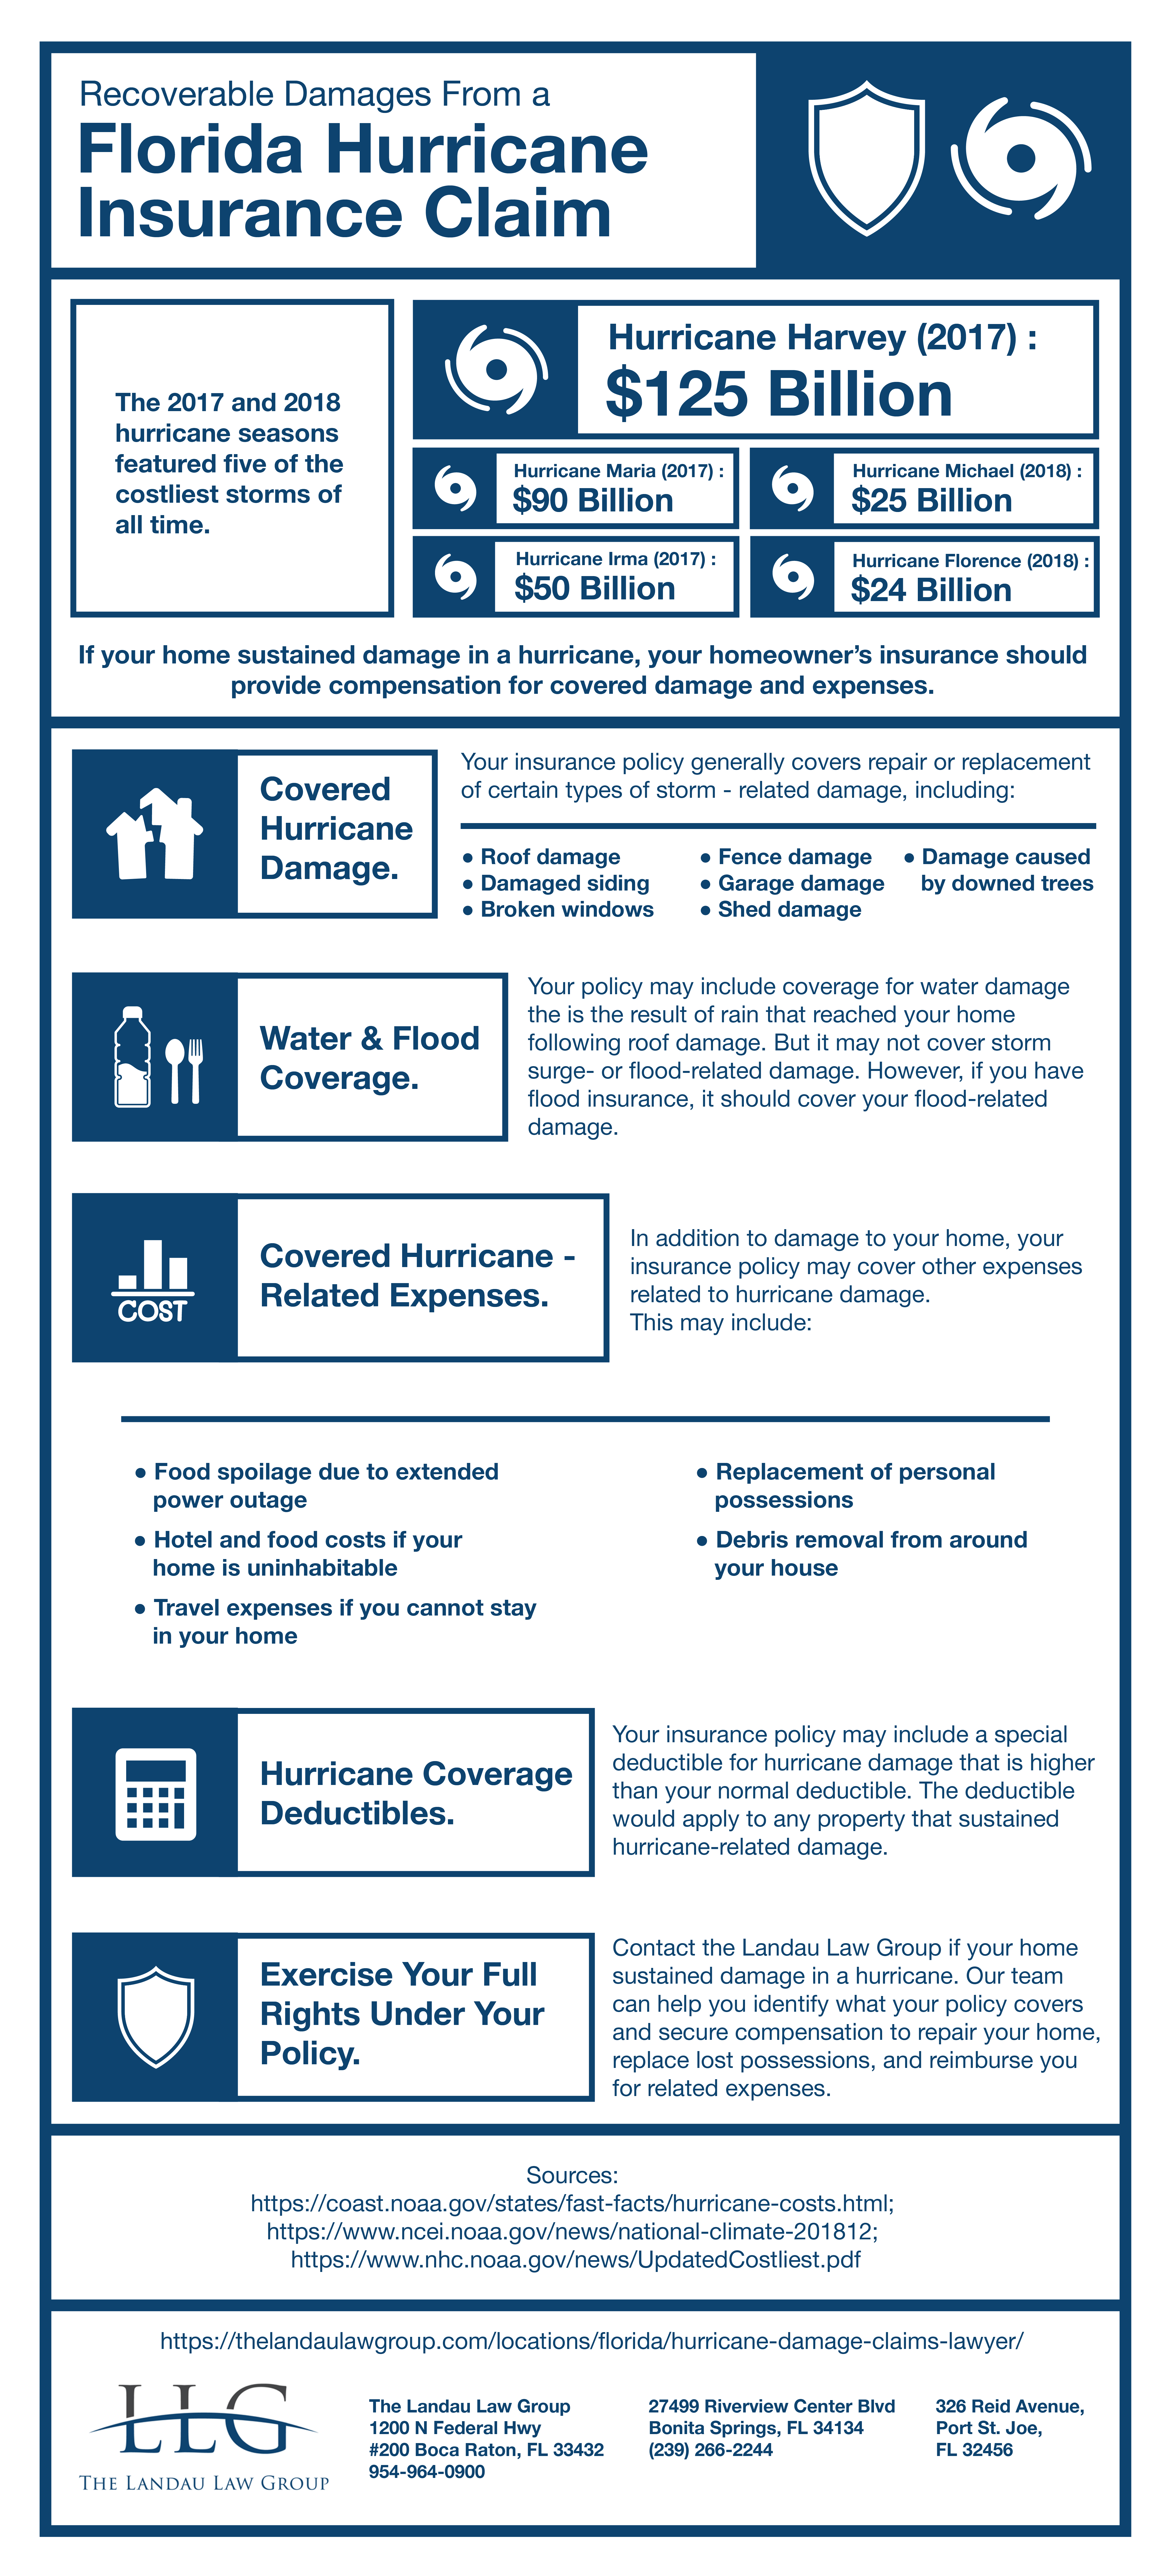 Recoverable Damages From a Florida Hurricane Insurance Claim